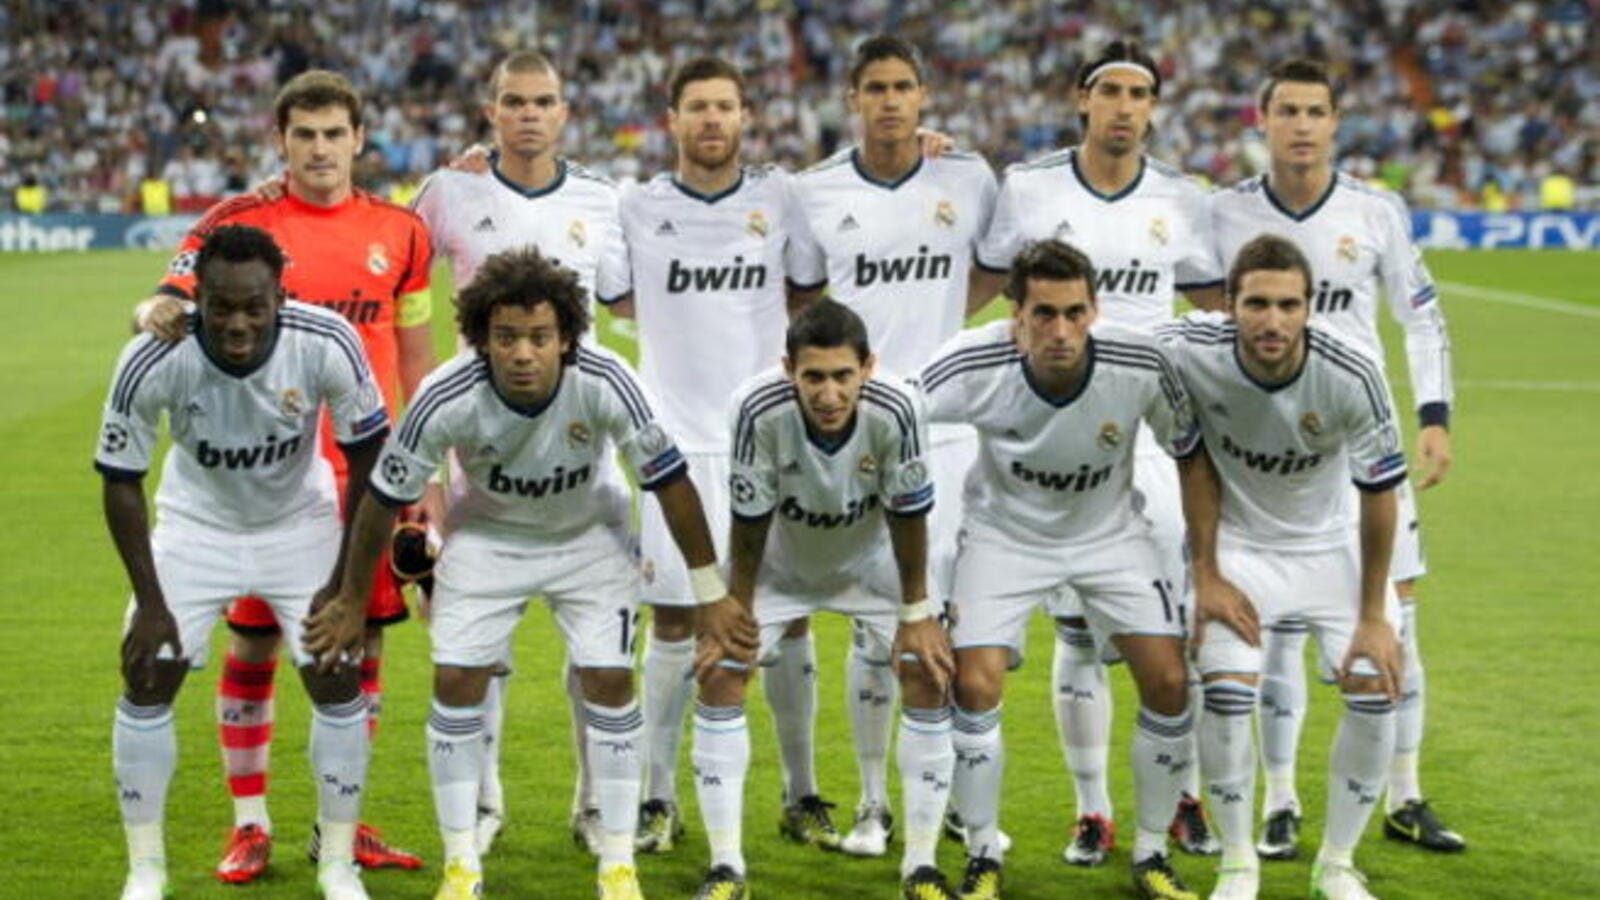 Spanish giants Real Madrid top Deloitte's football rich list for eighth straight year